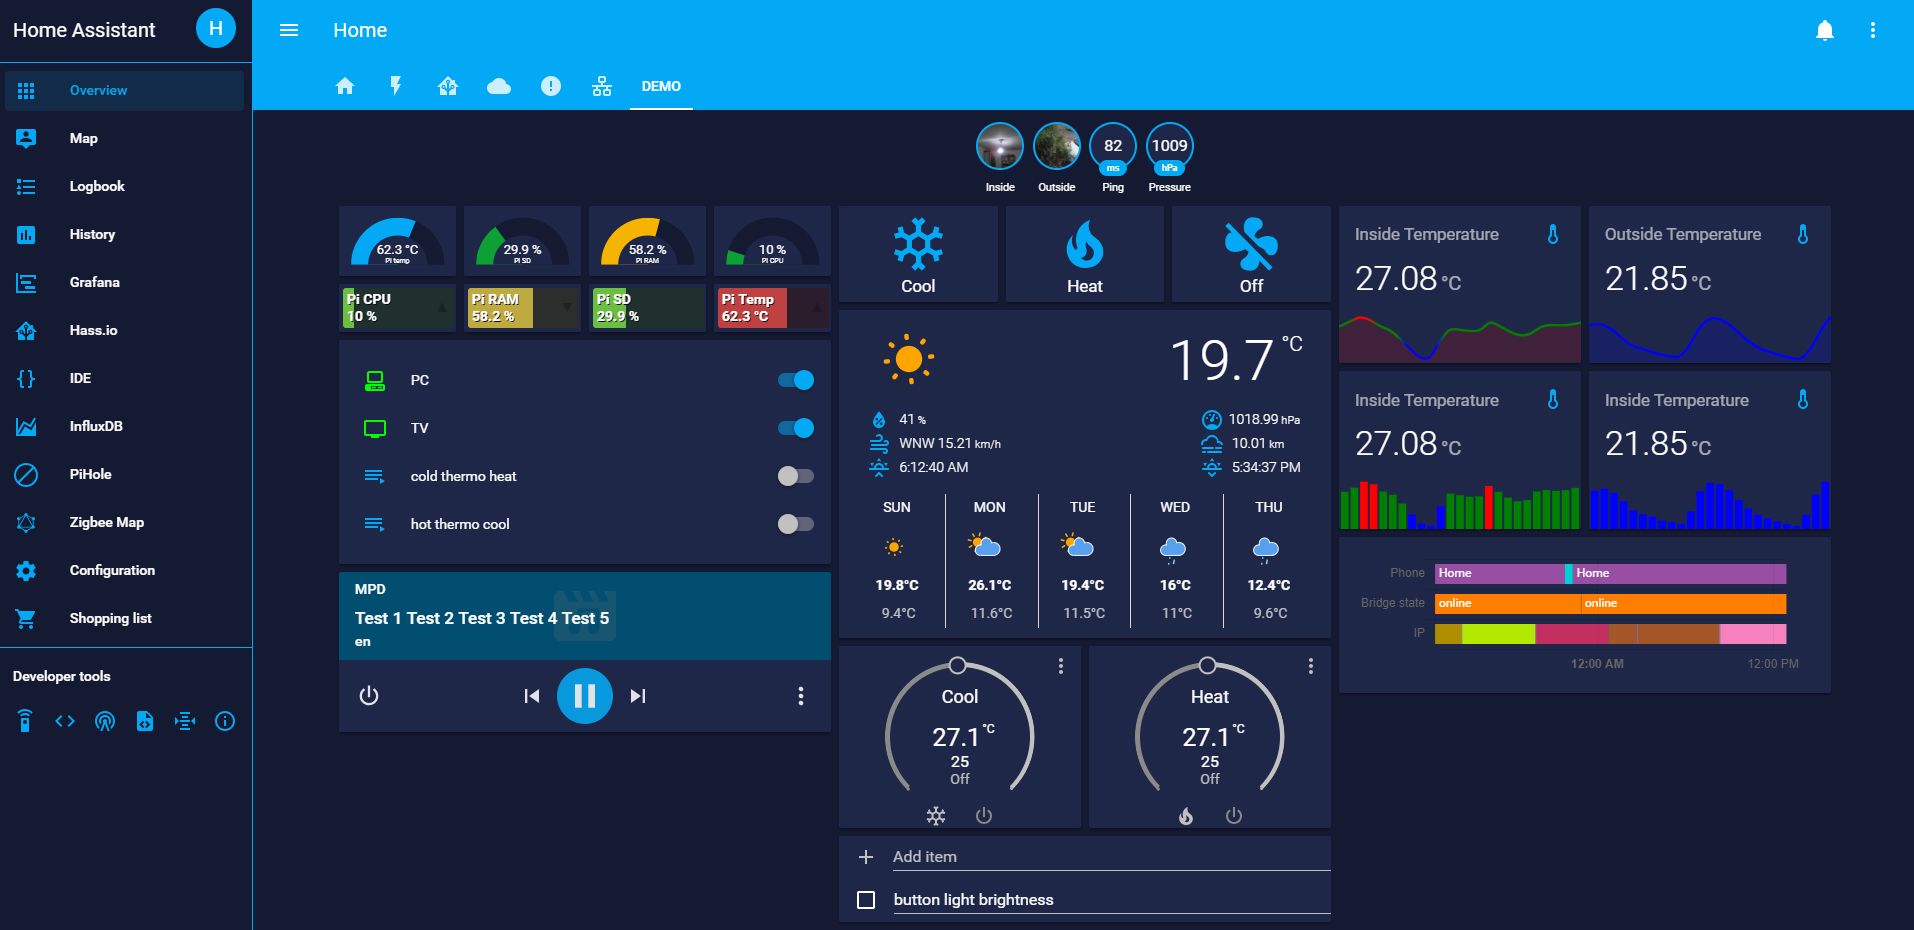 DarkMix - Dark/Blue theme - Themes - Home Assistant Community